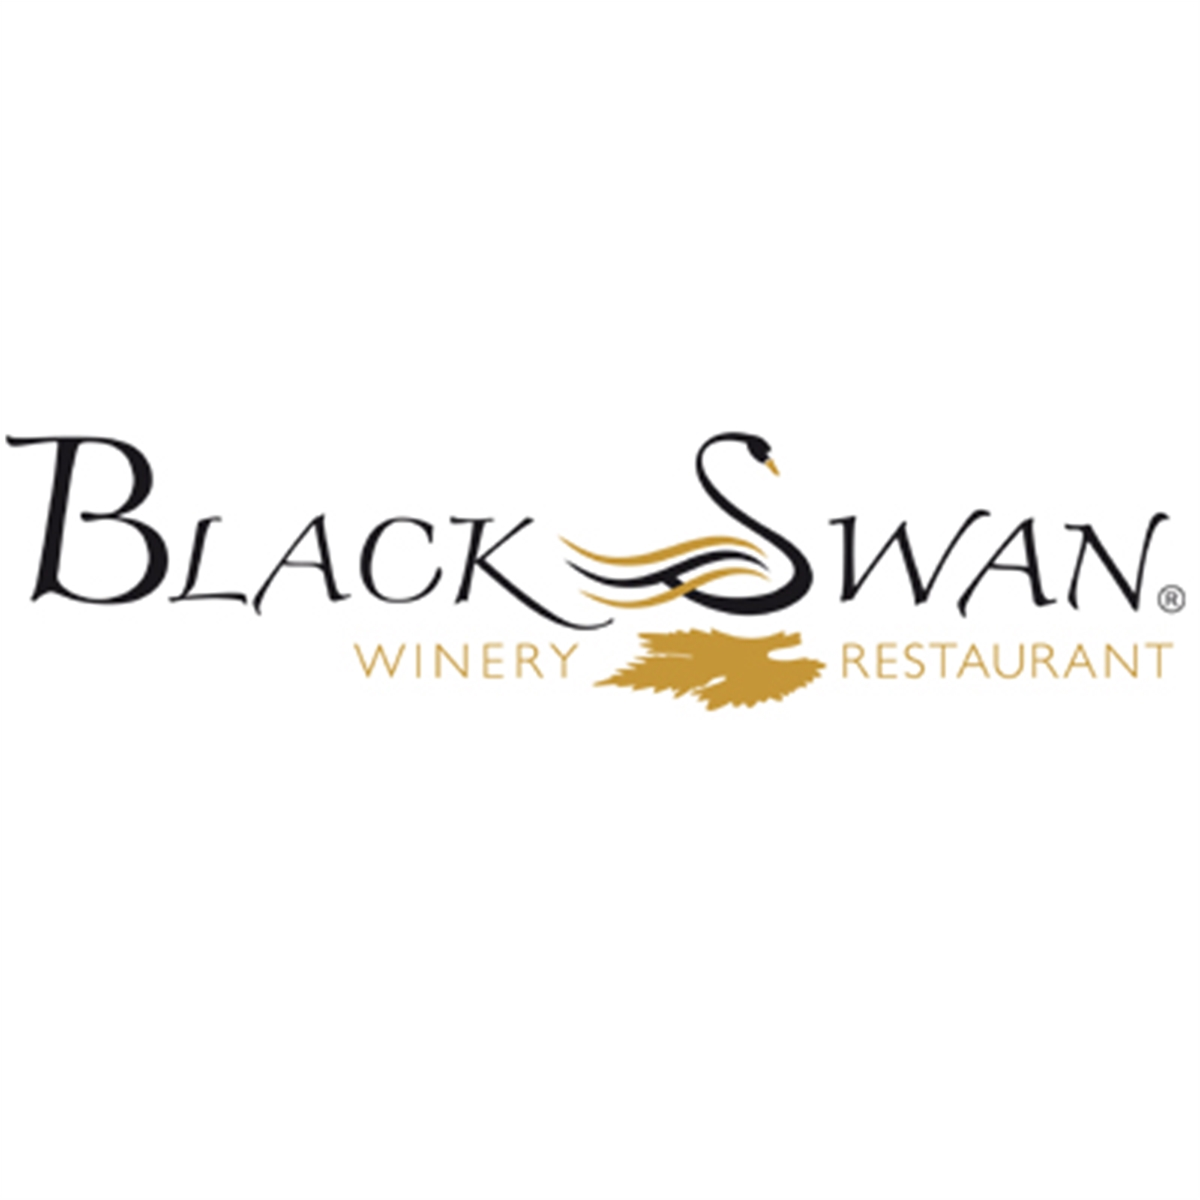 Black Swan Winery and Restaurant